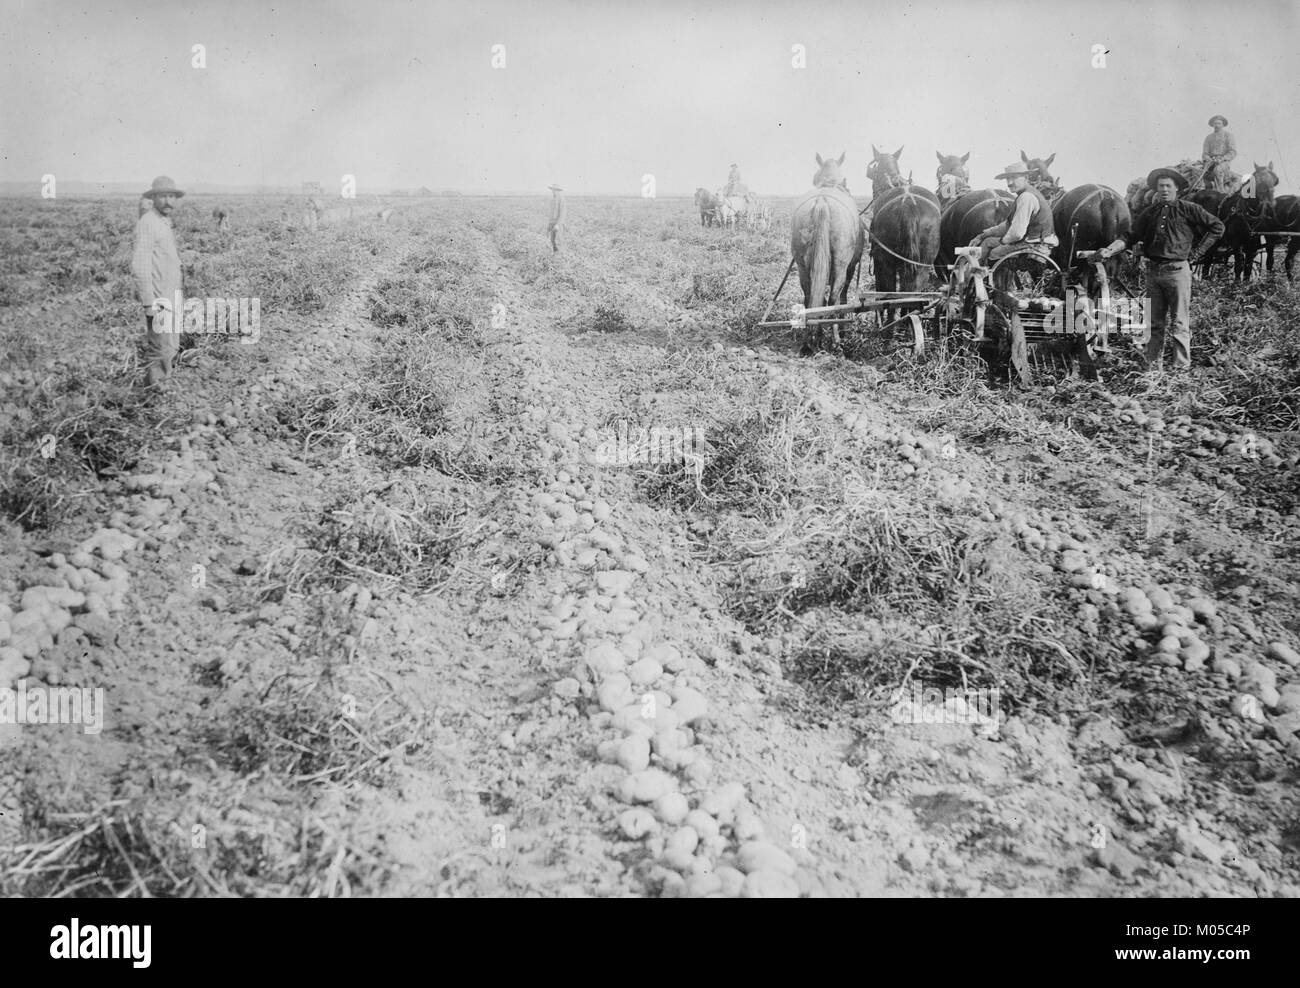 Harvesting in Potato field, Colorado - Stock Image